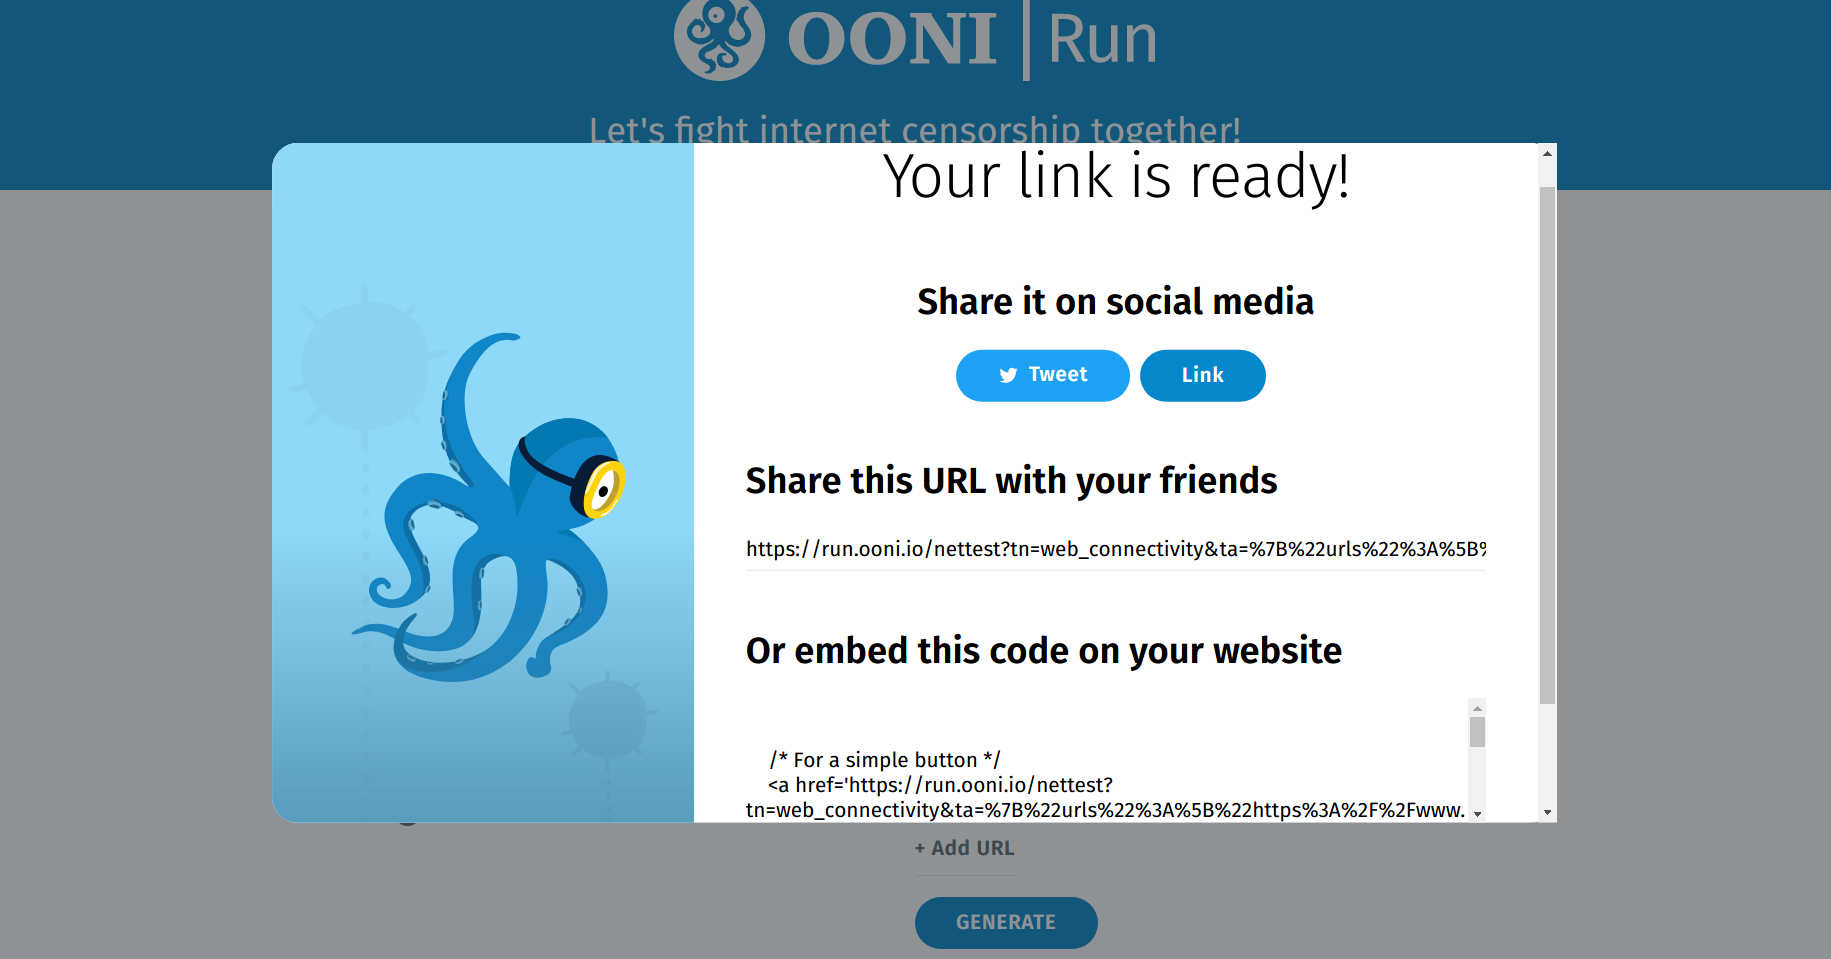 OONI Run: Links and code